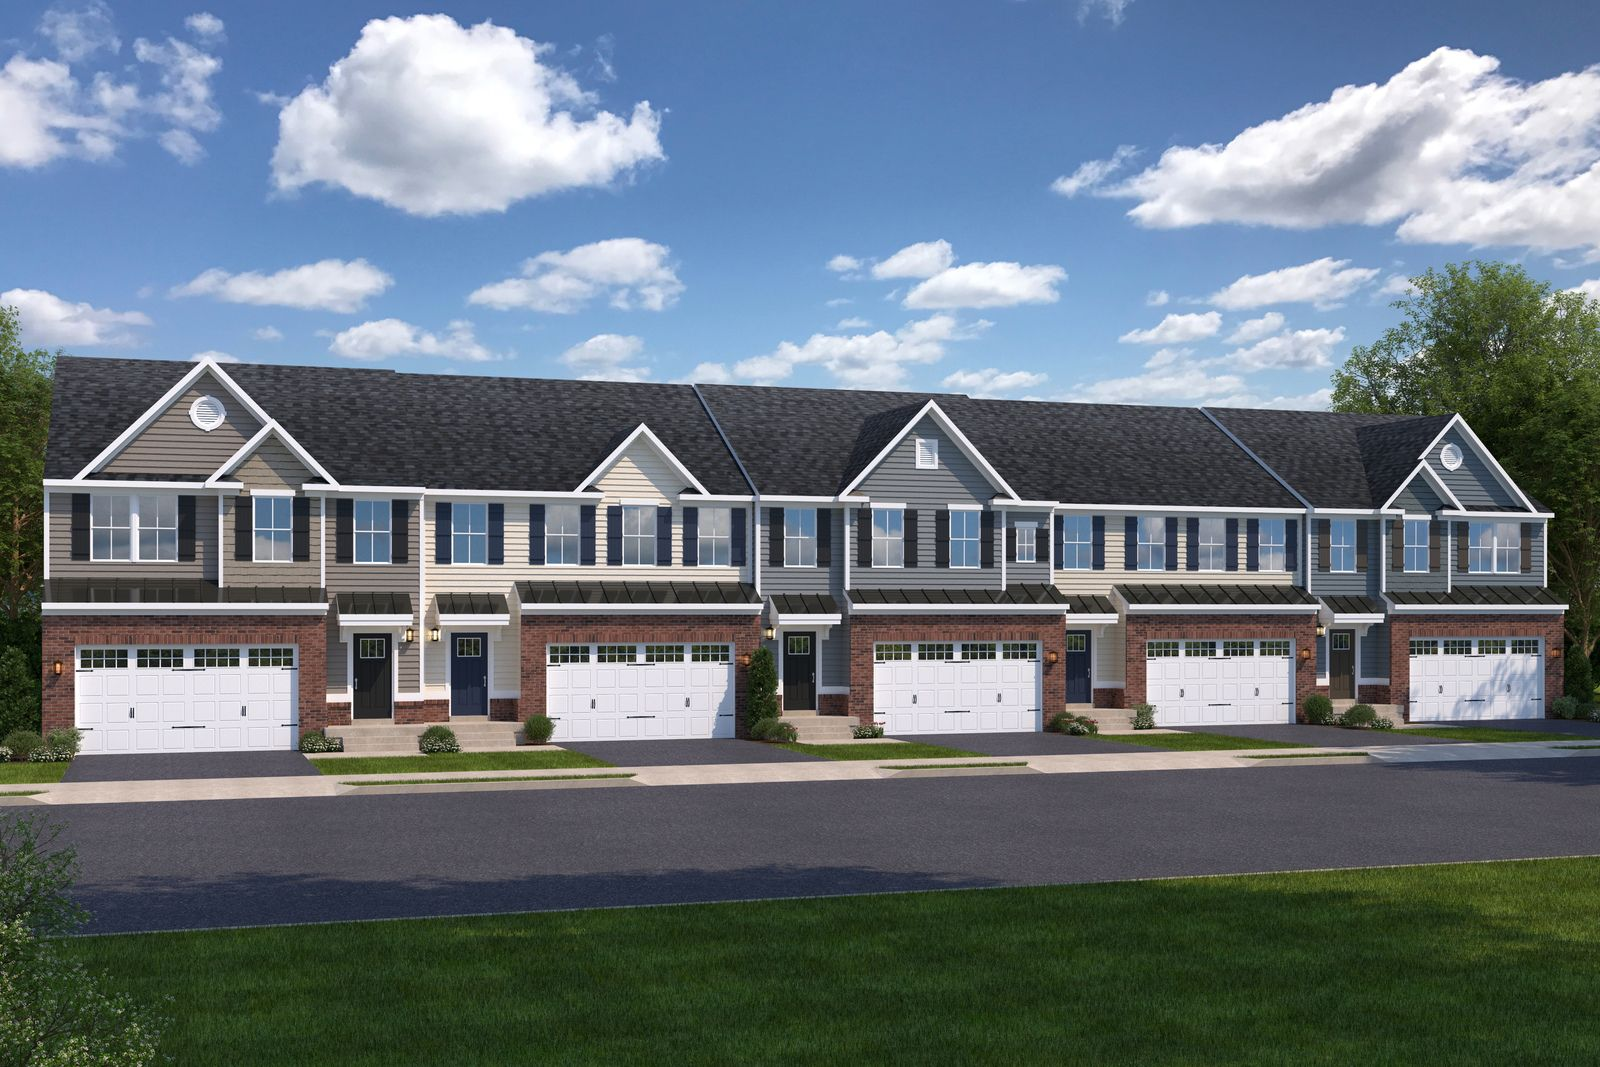 Become a James Run VIP!:Join our VIP list todayfor the first opportunity to get exclusive details and purchase your new home at James Run Carriage Homes!